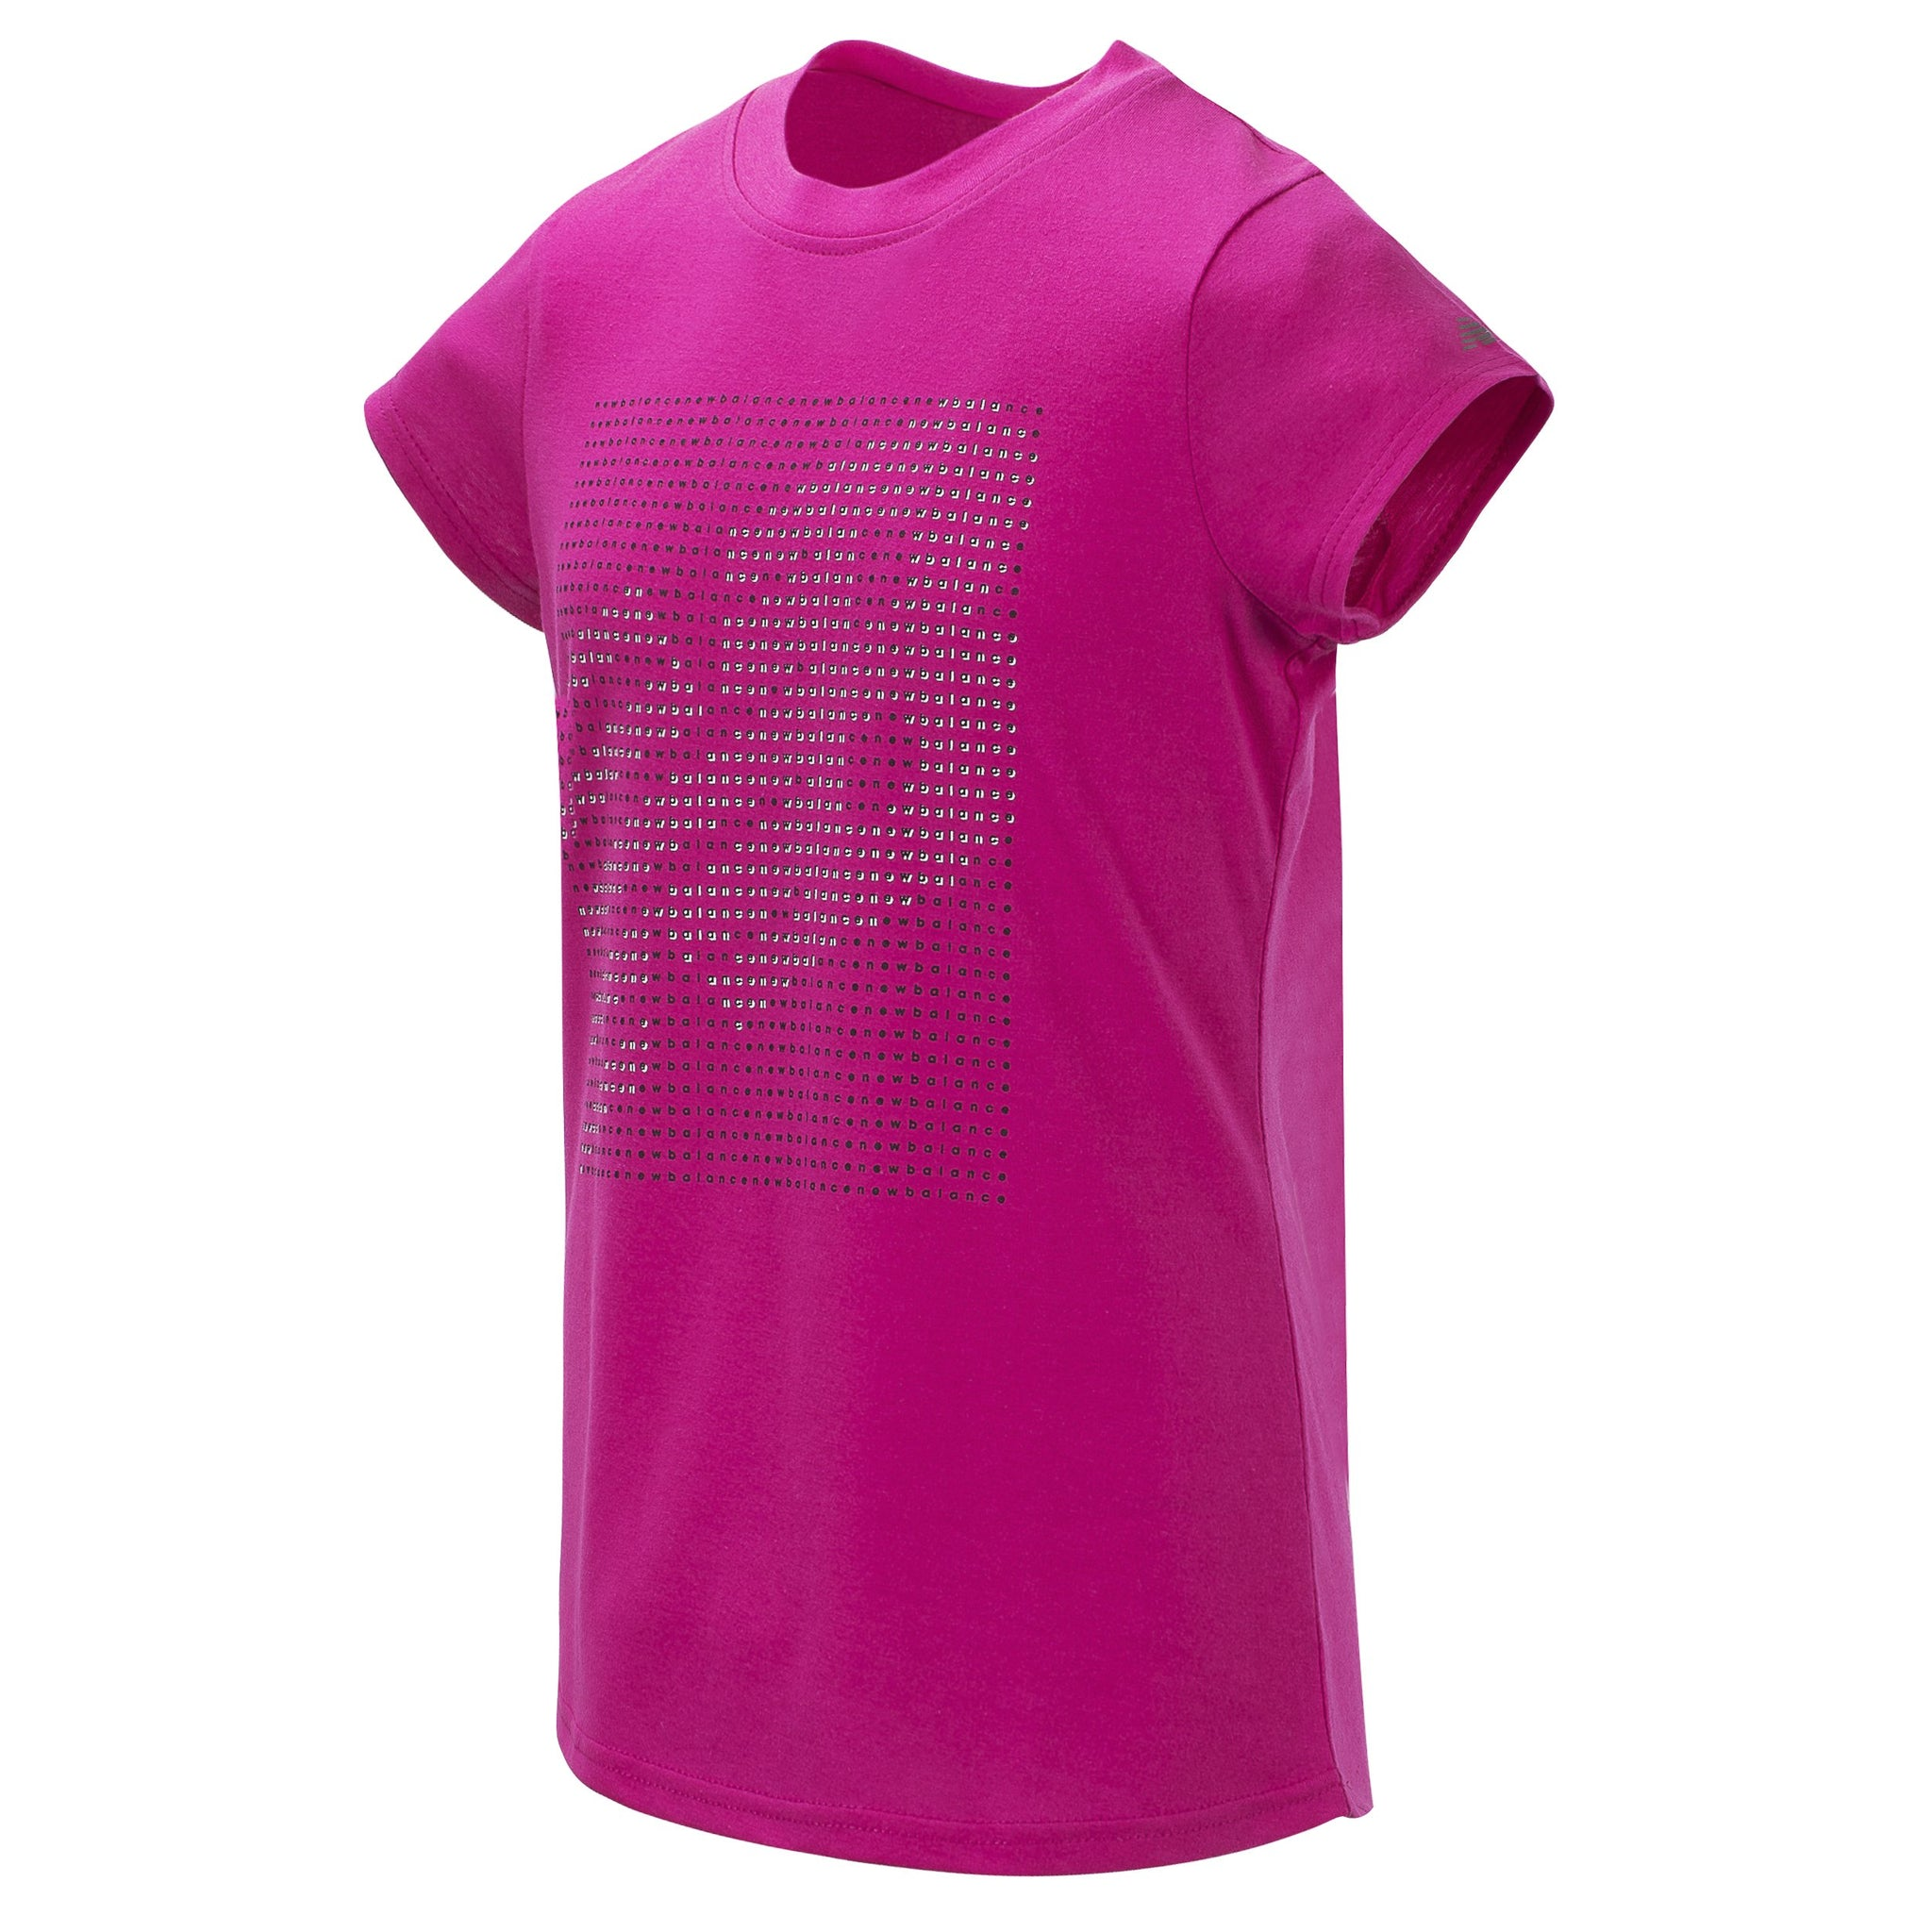 Girls' Carnival Pink with Glitter Short Sleeve Graphic Tee-Gerber Childrenswear